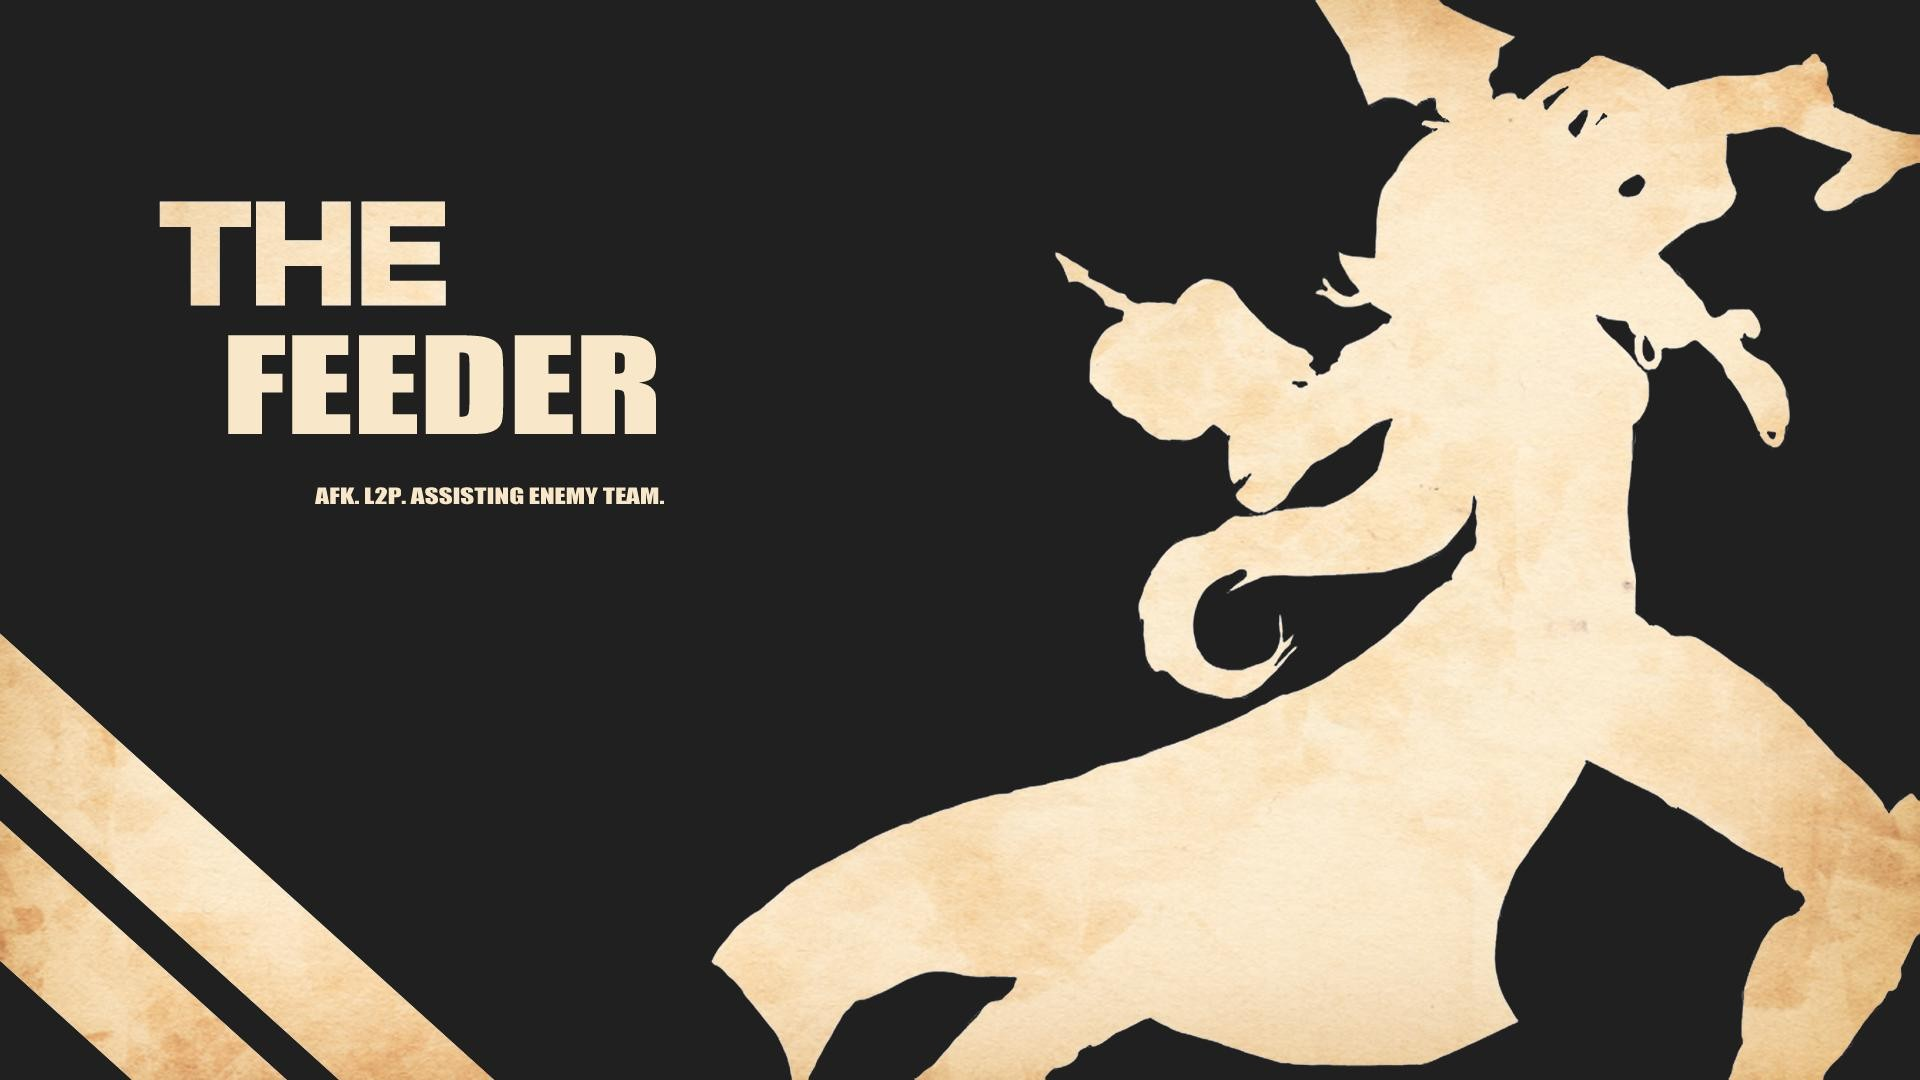 League of Legends Wallpaper – The Feeder The Feeder: AFK. L2P. Assisting  Enemy Team.